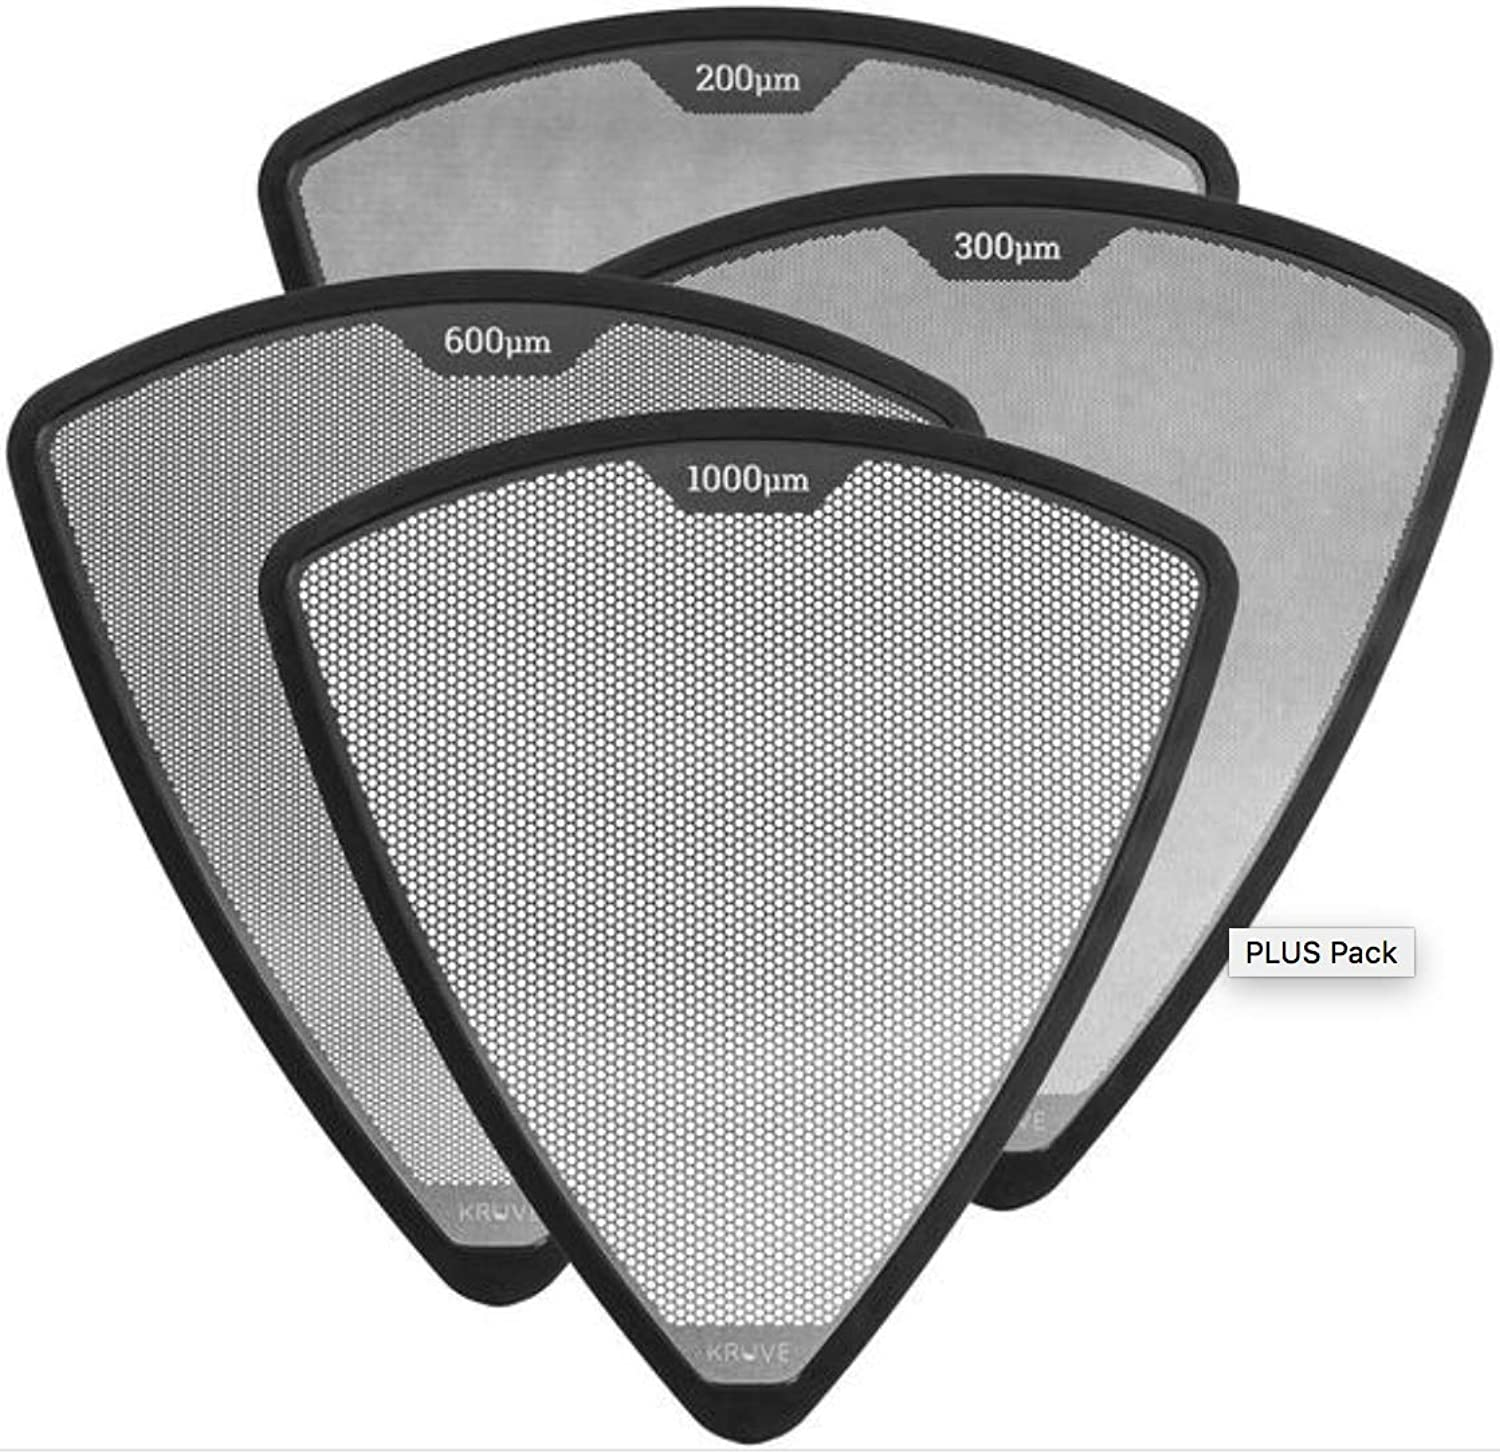 PLUS Pack, for KRUVE Sifter